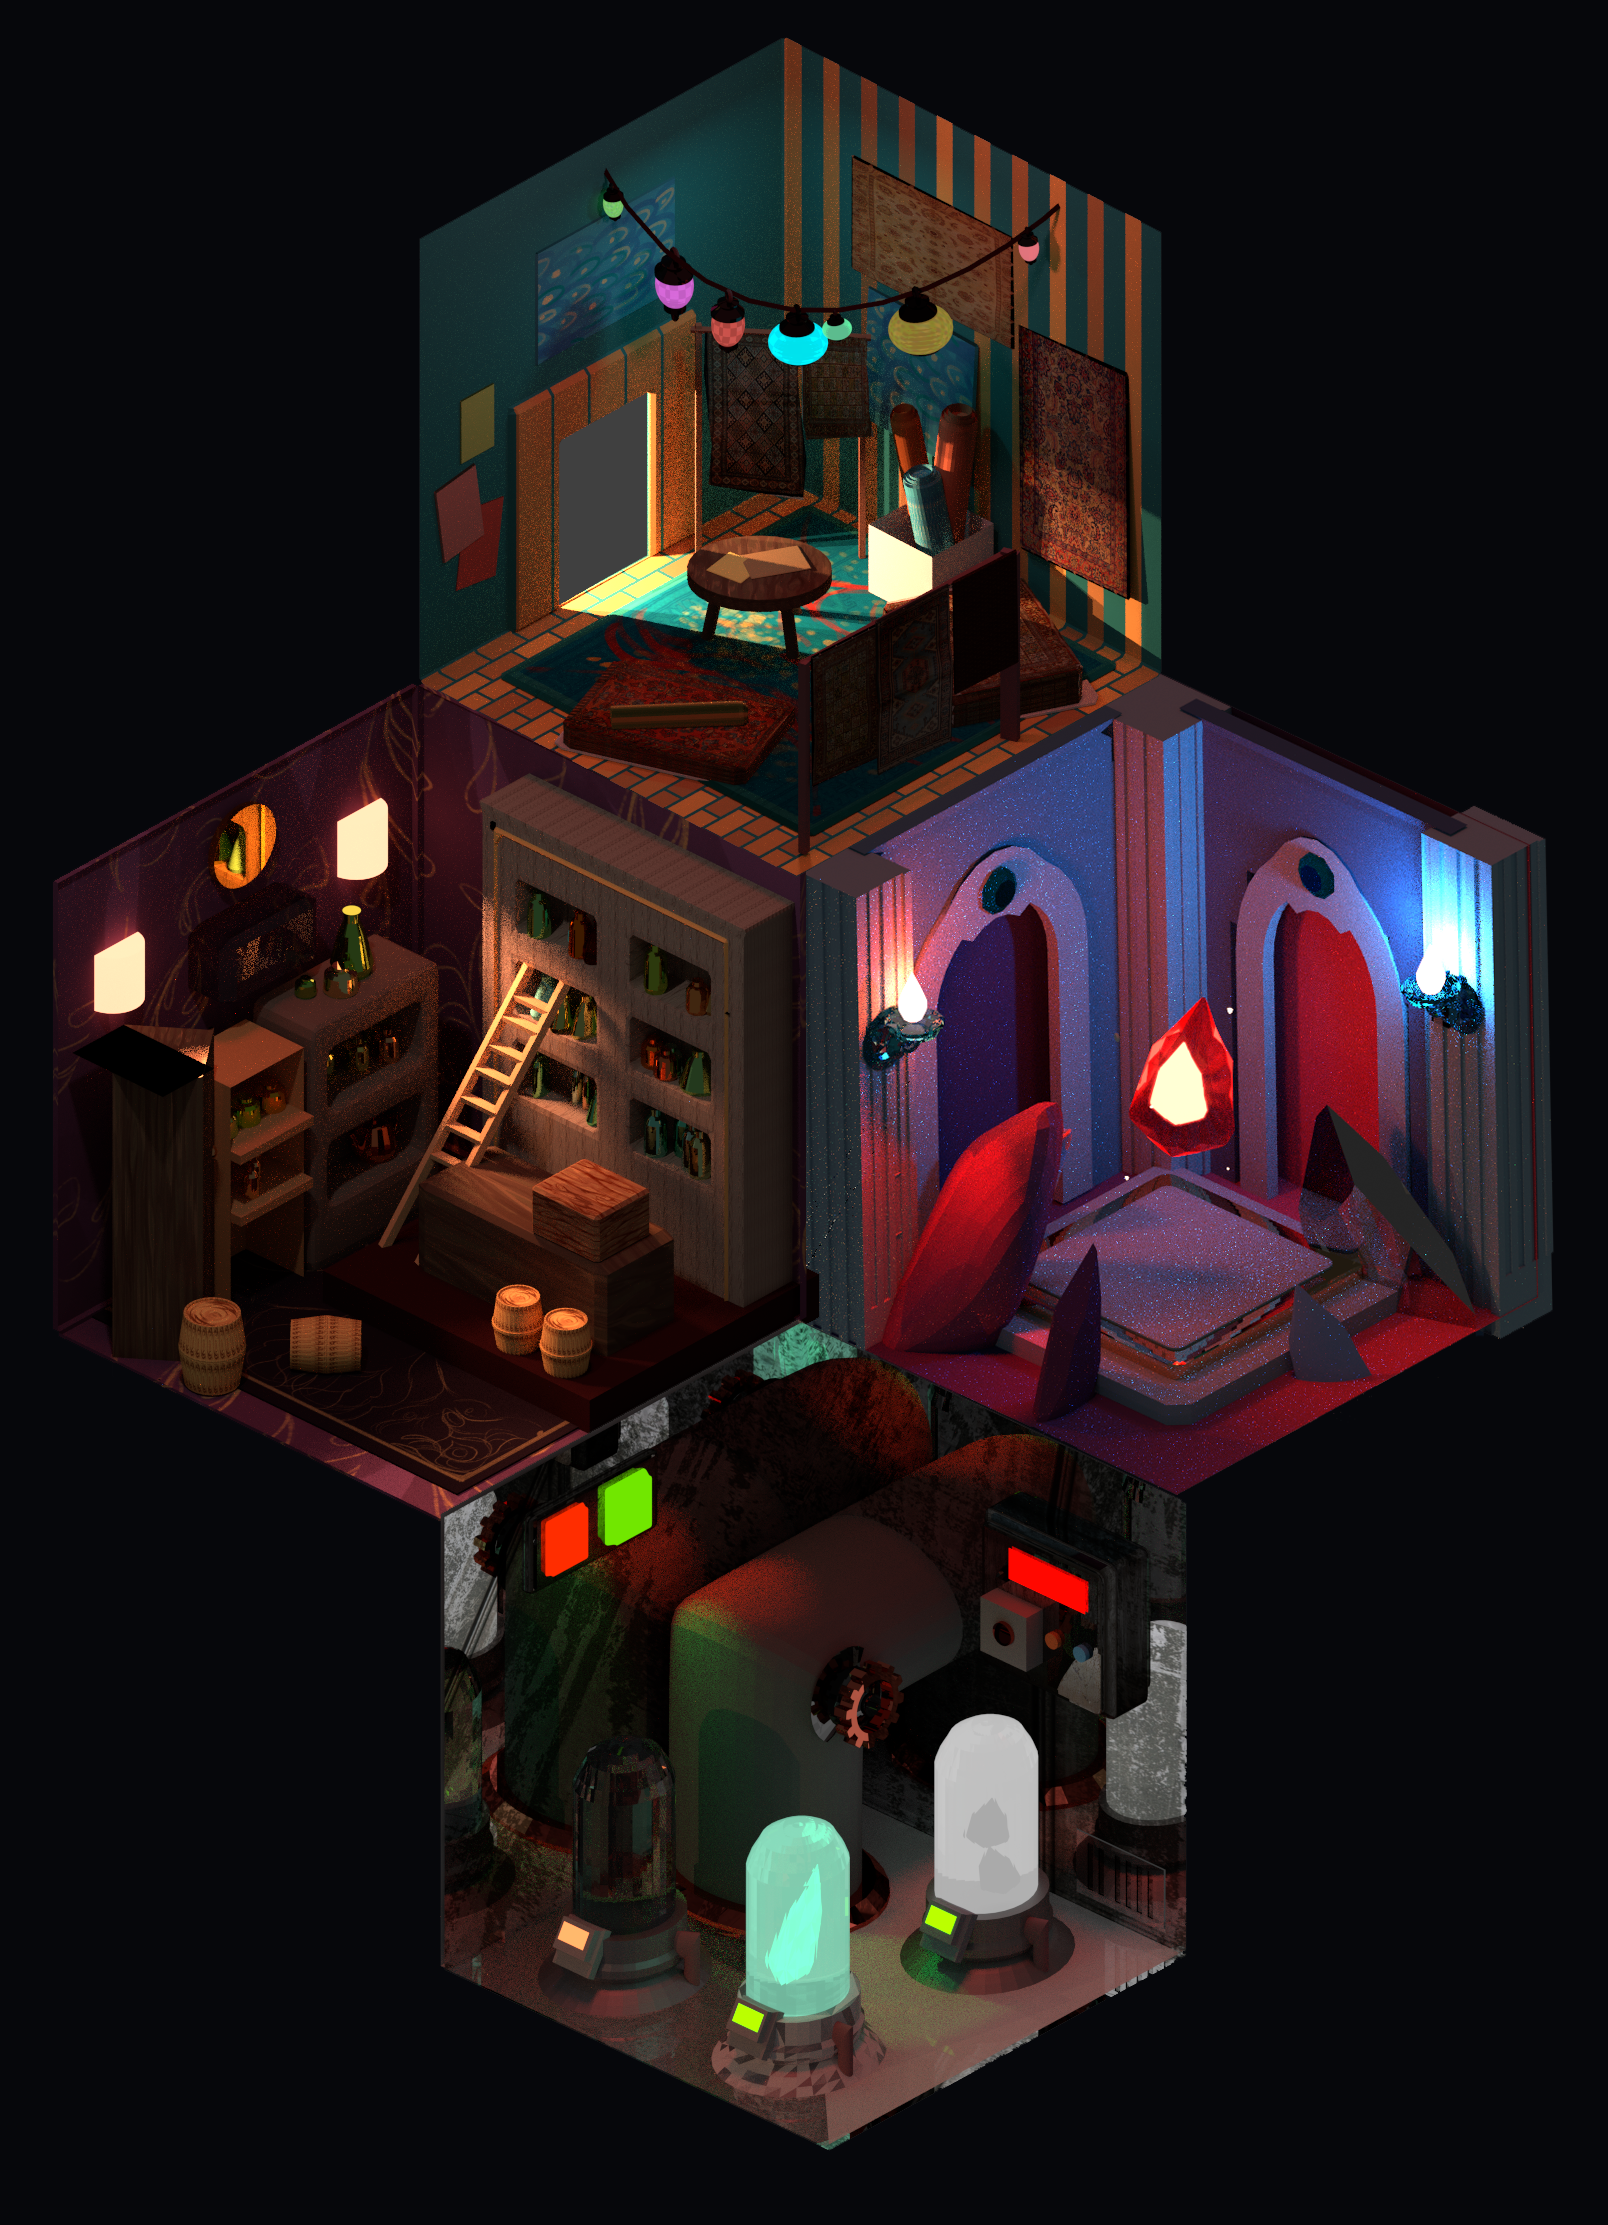 a series of isometric rooms paying homage to traditional RPGs, for a game proposal that involves exploring rooms with varying aesthetics.